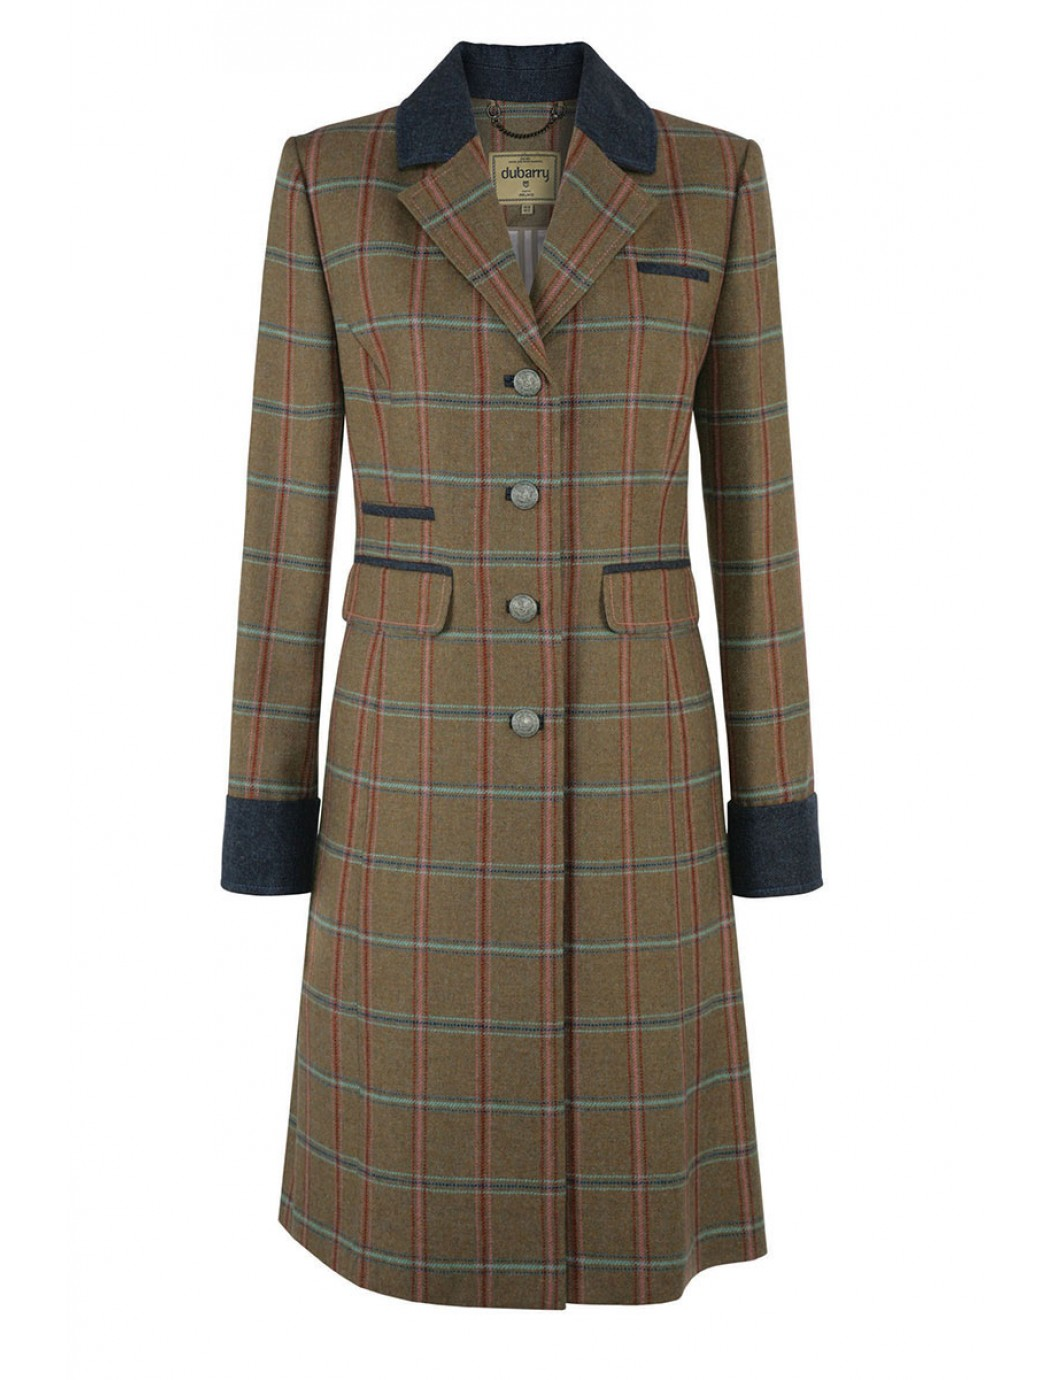 blackthorn-womens-tweed-connacht-meadow